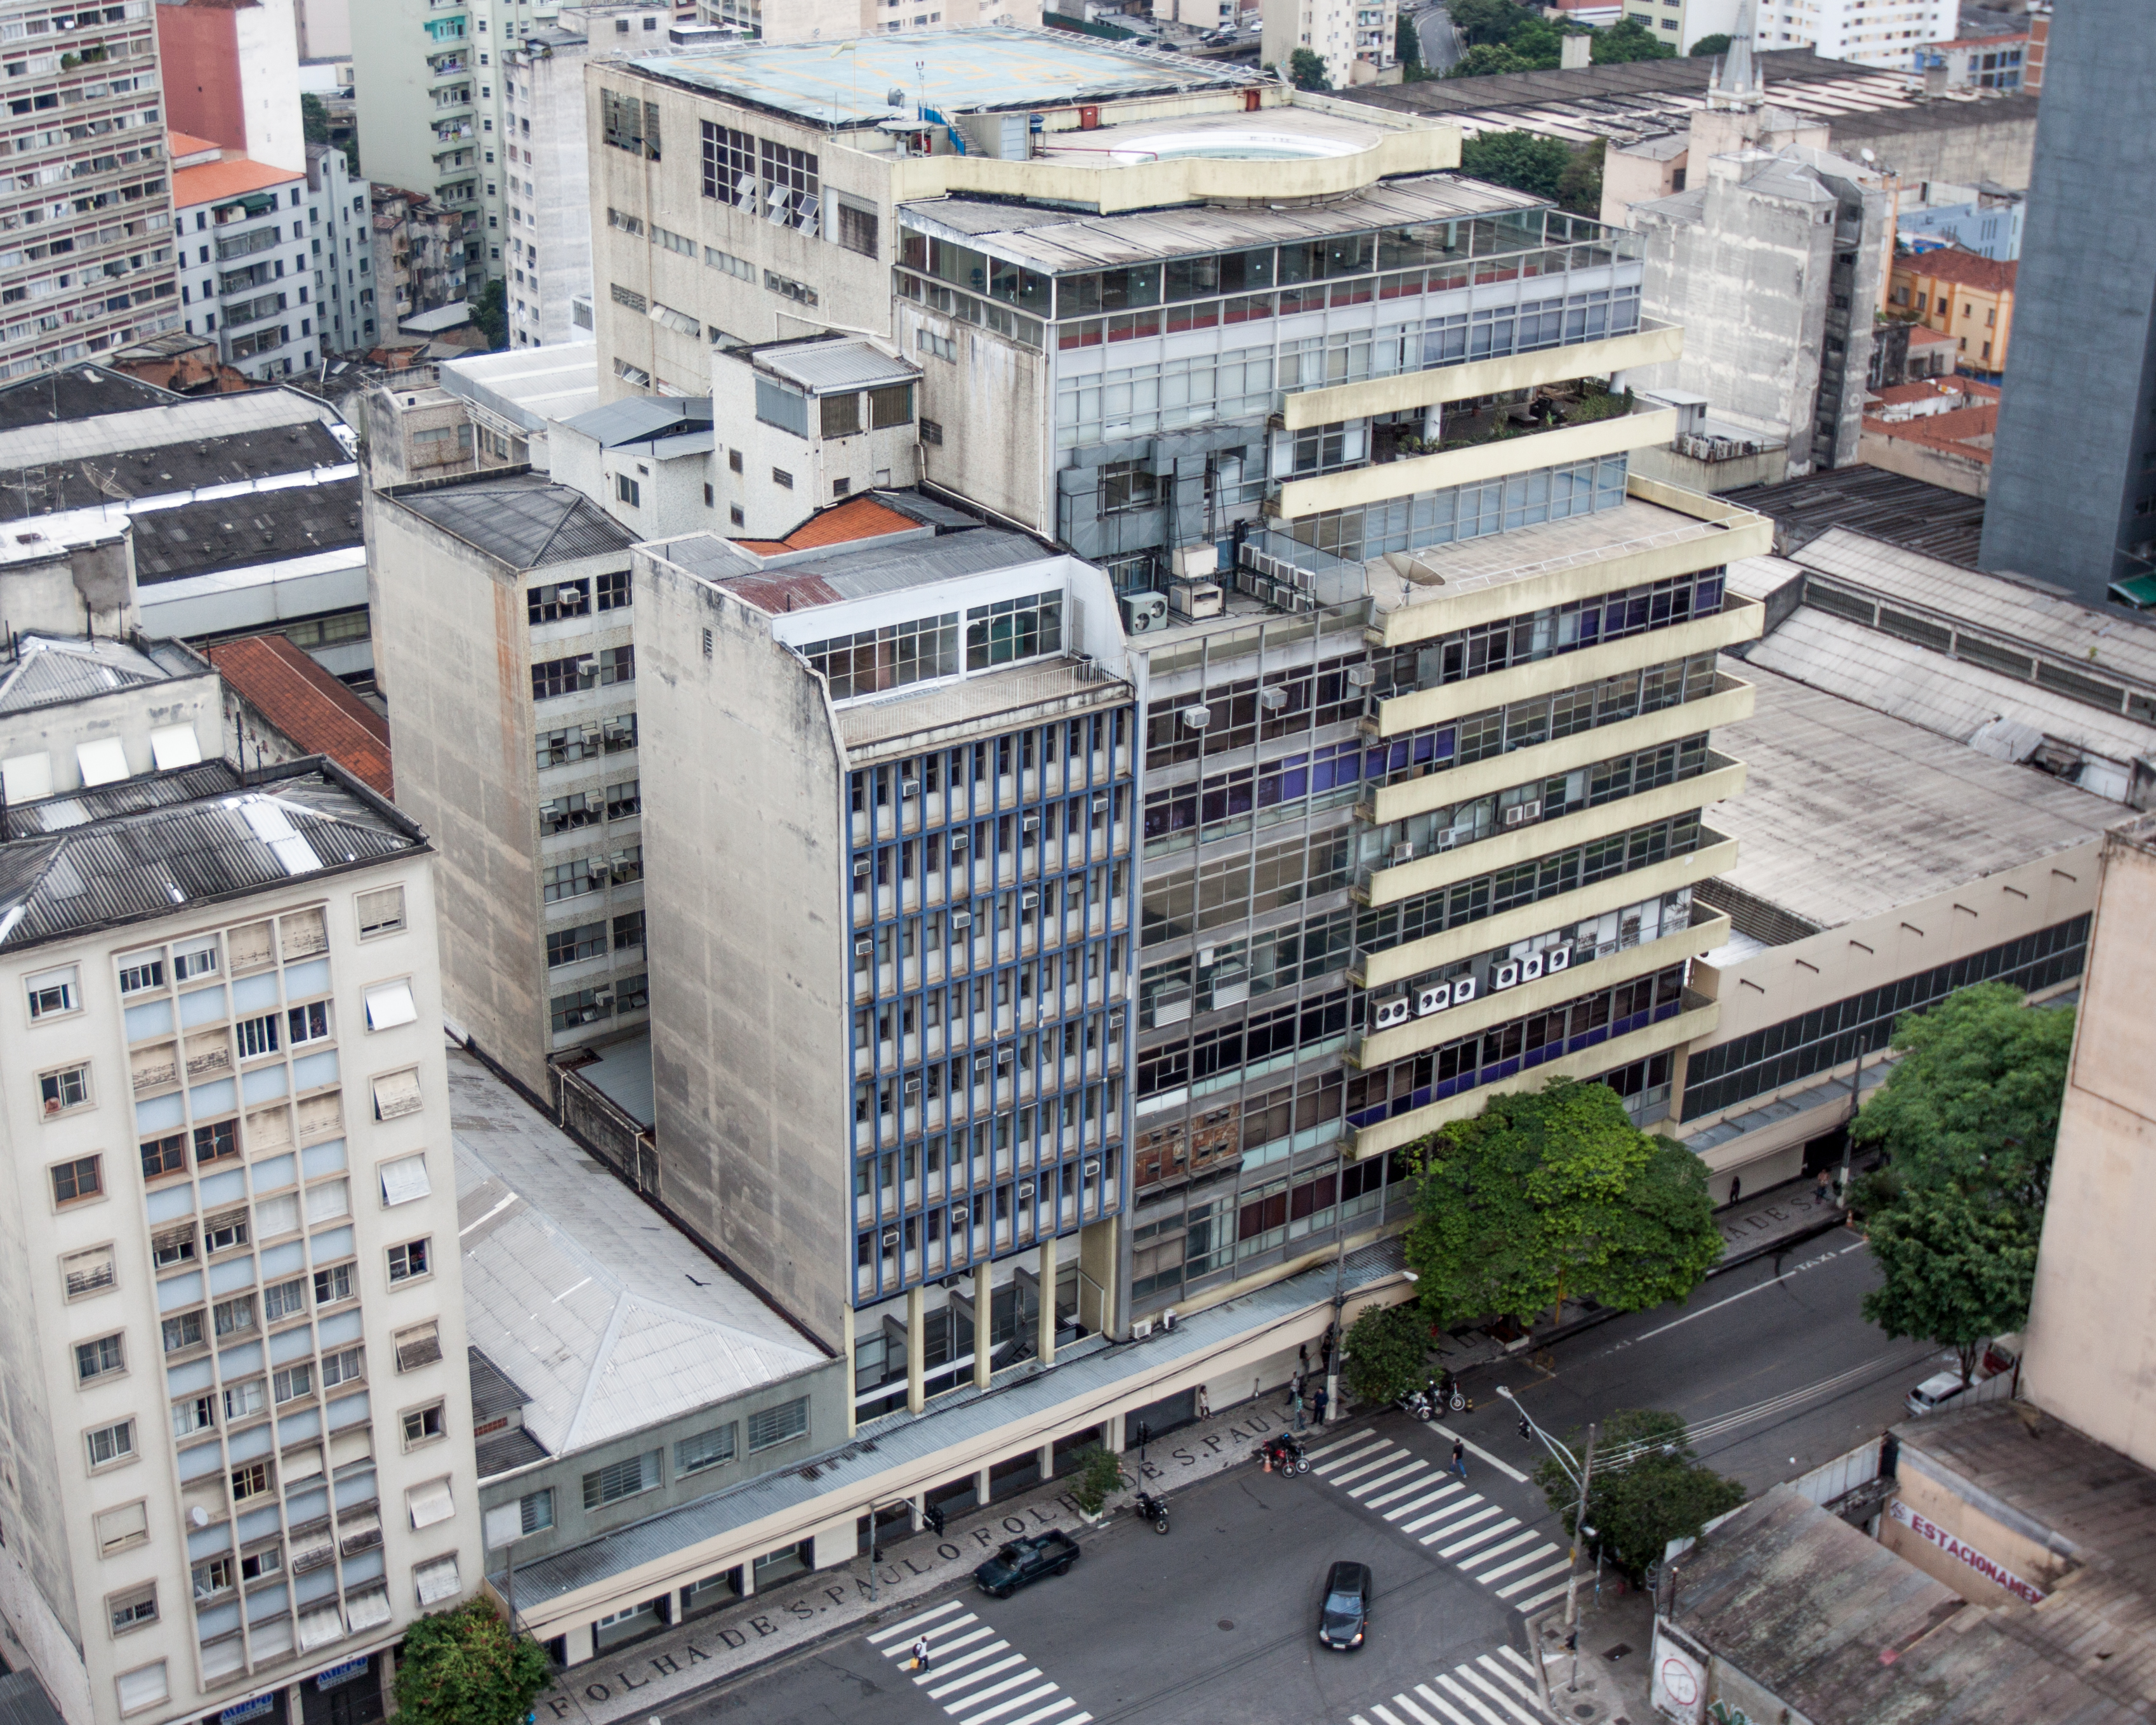 Current headquarters of Grupo Folha in São Paulo, where the newspapers that would later become Folha de S.Paulo started being printed in 1950, and to where they moved their newsrooms in 1953.